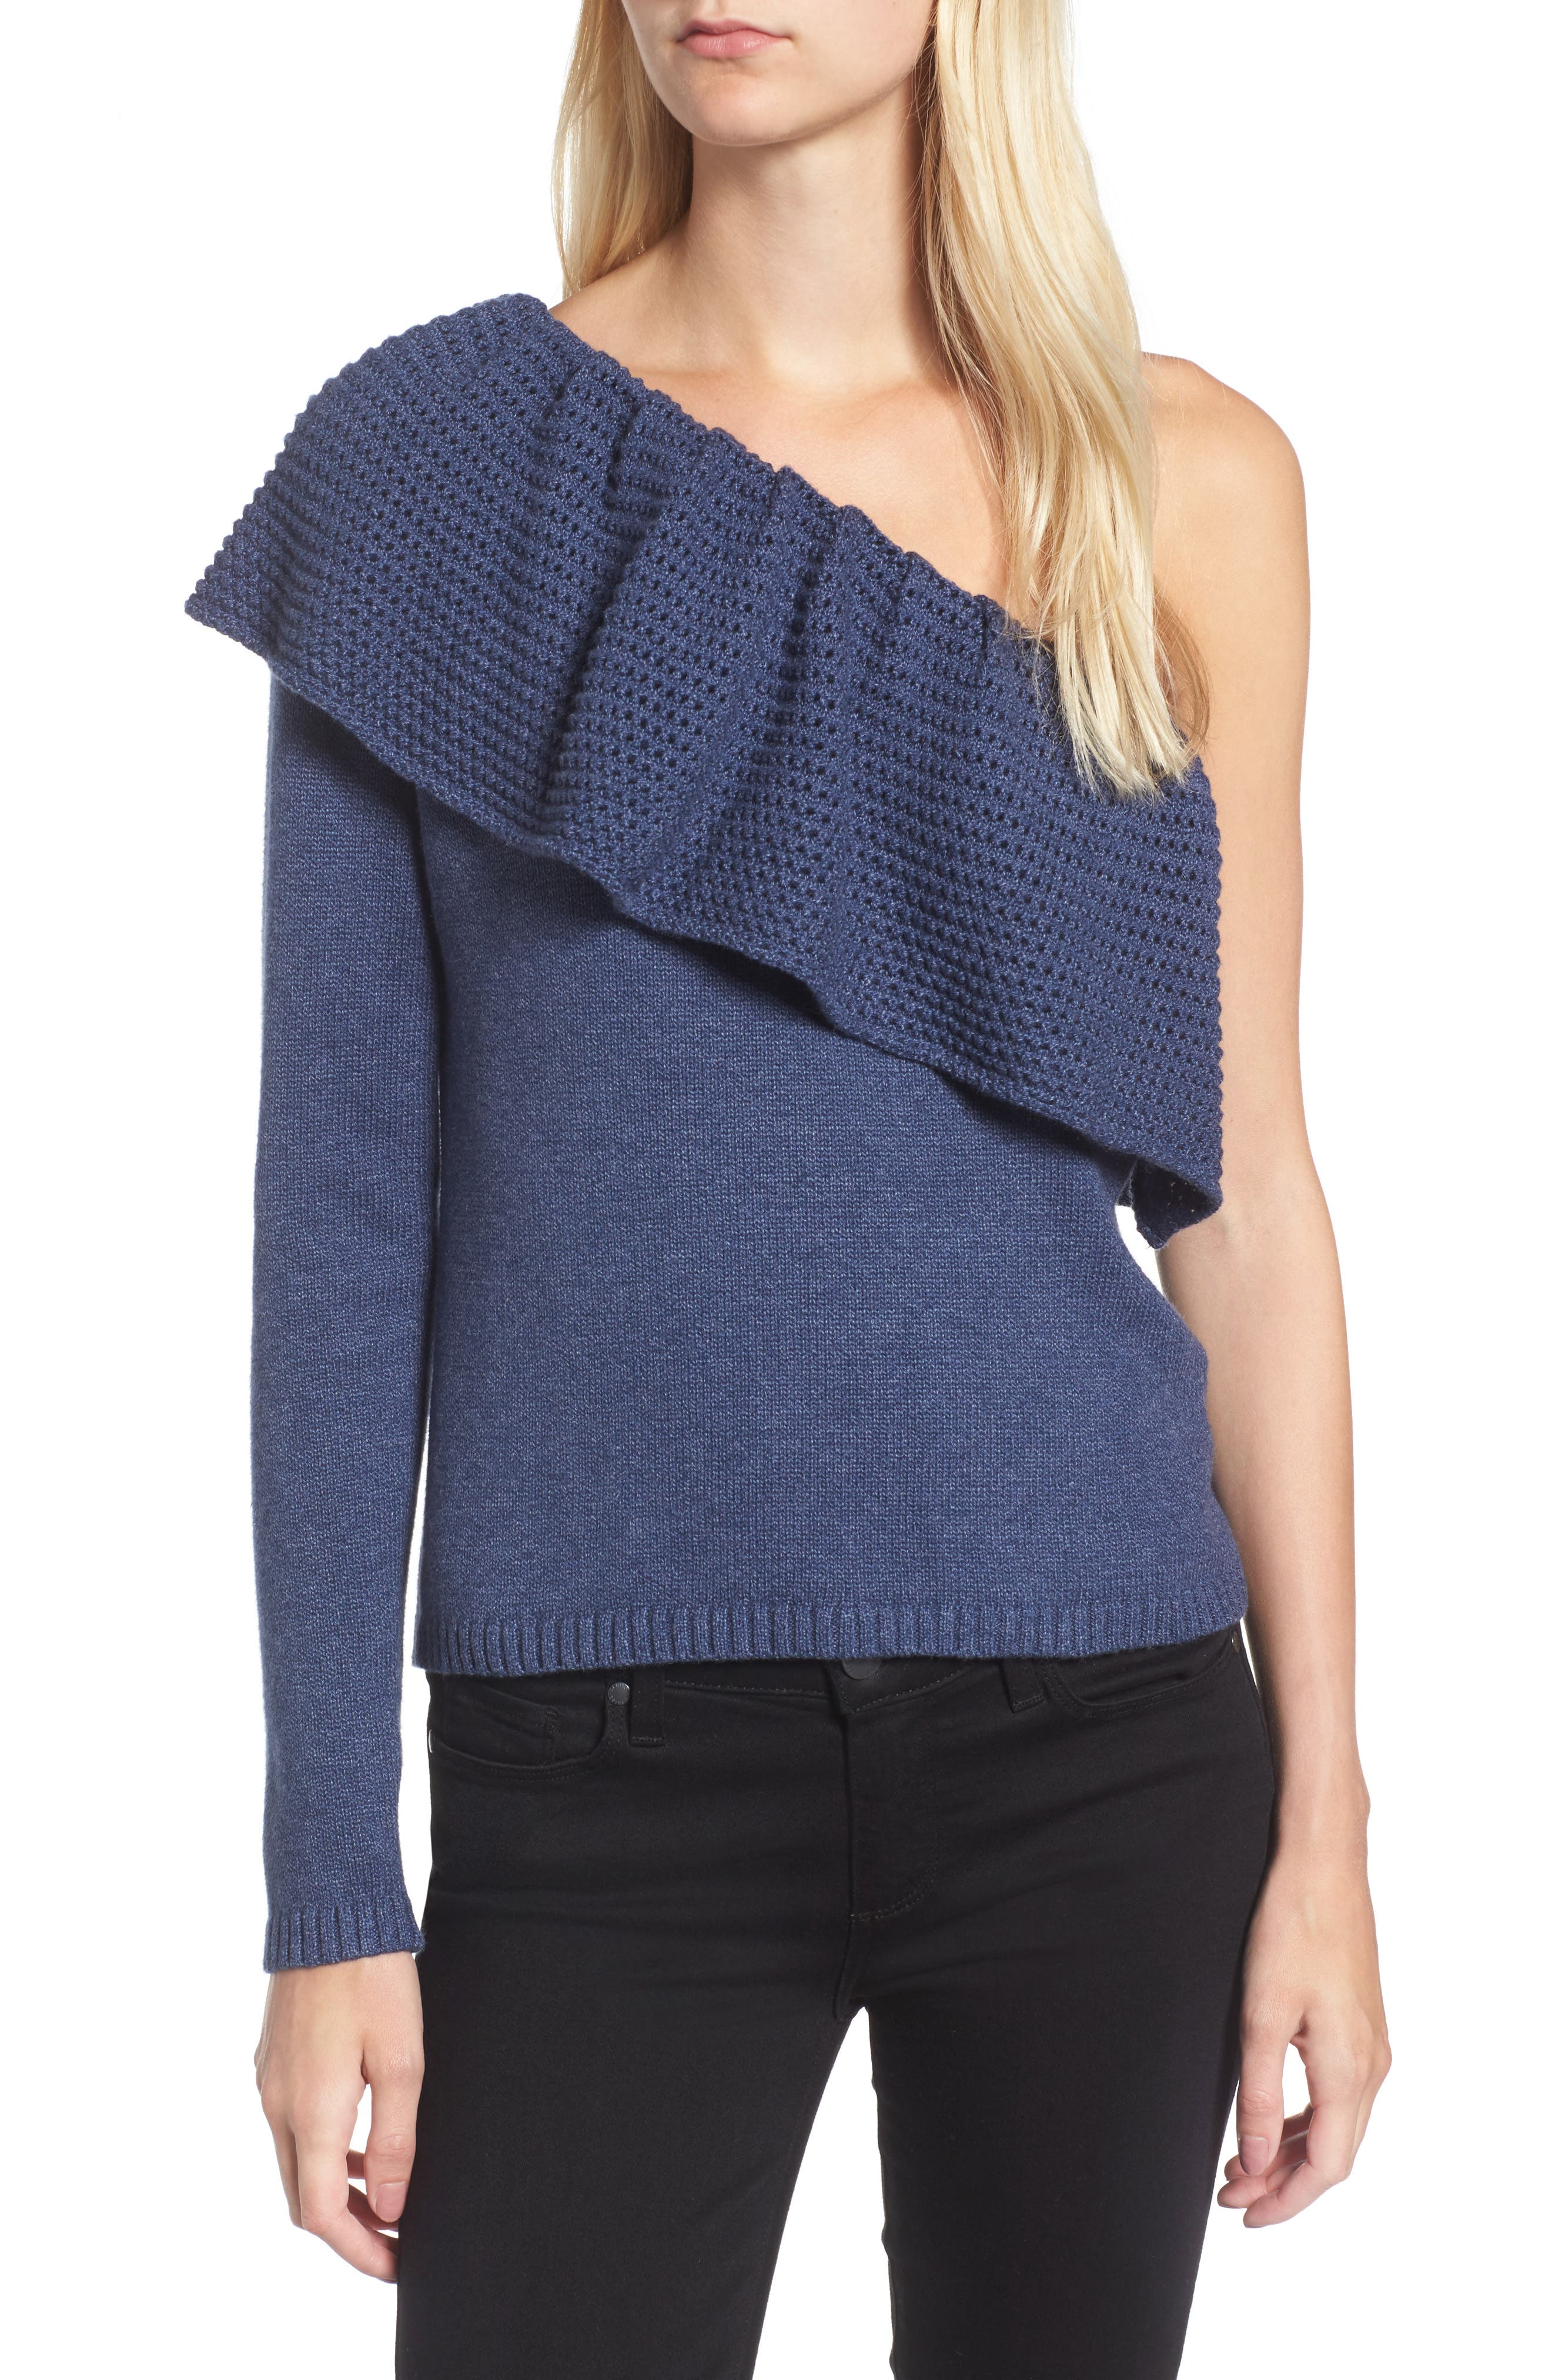 Ruffle One Shoulder Sweater,                             Main thumbnail 1, color,                             439